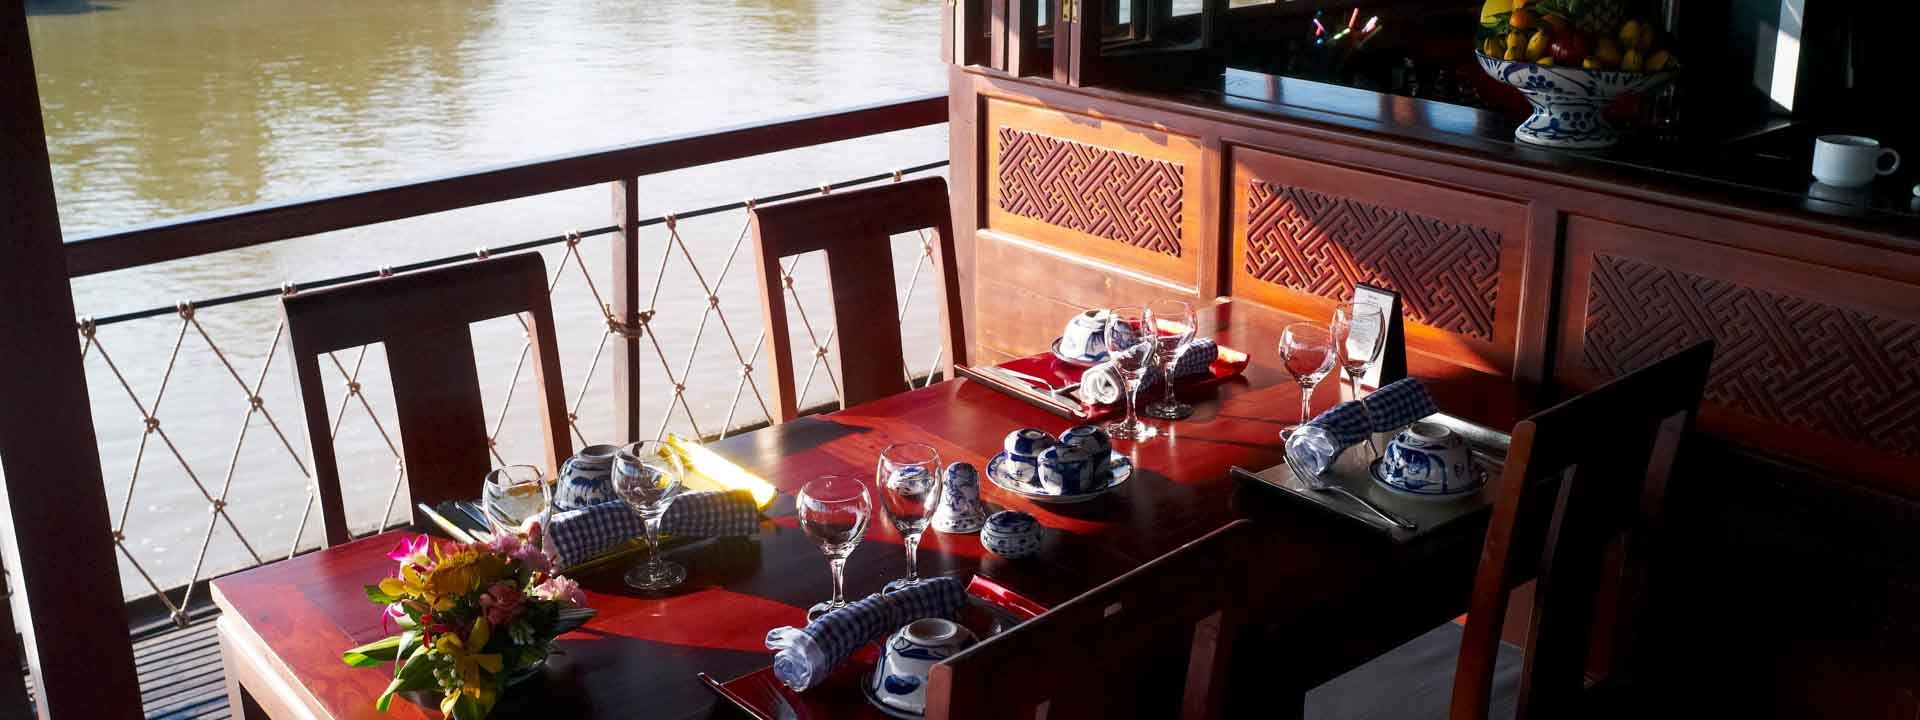 Mekong at a Glimpse on Cai Be Princess